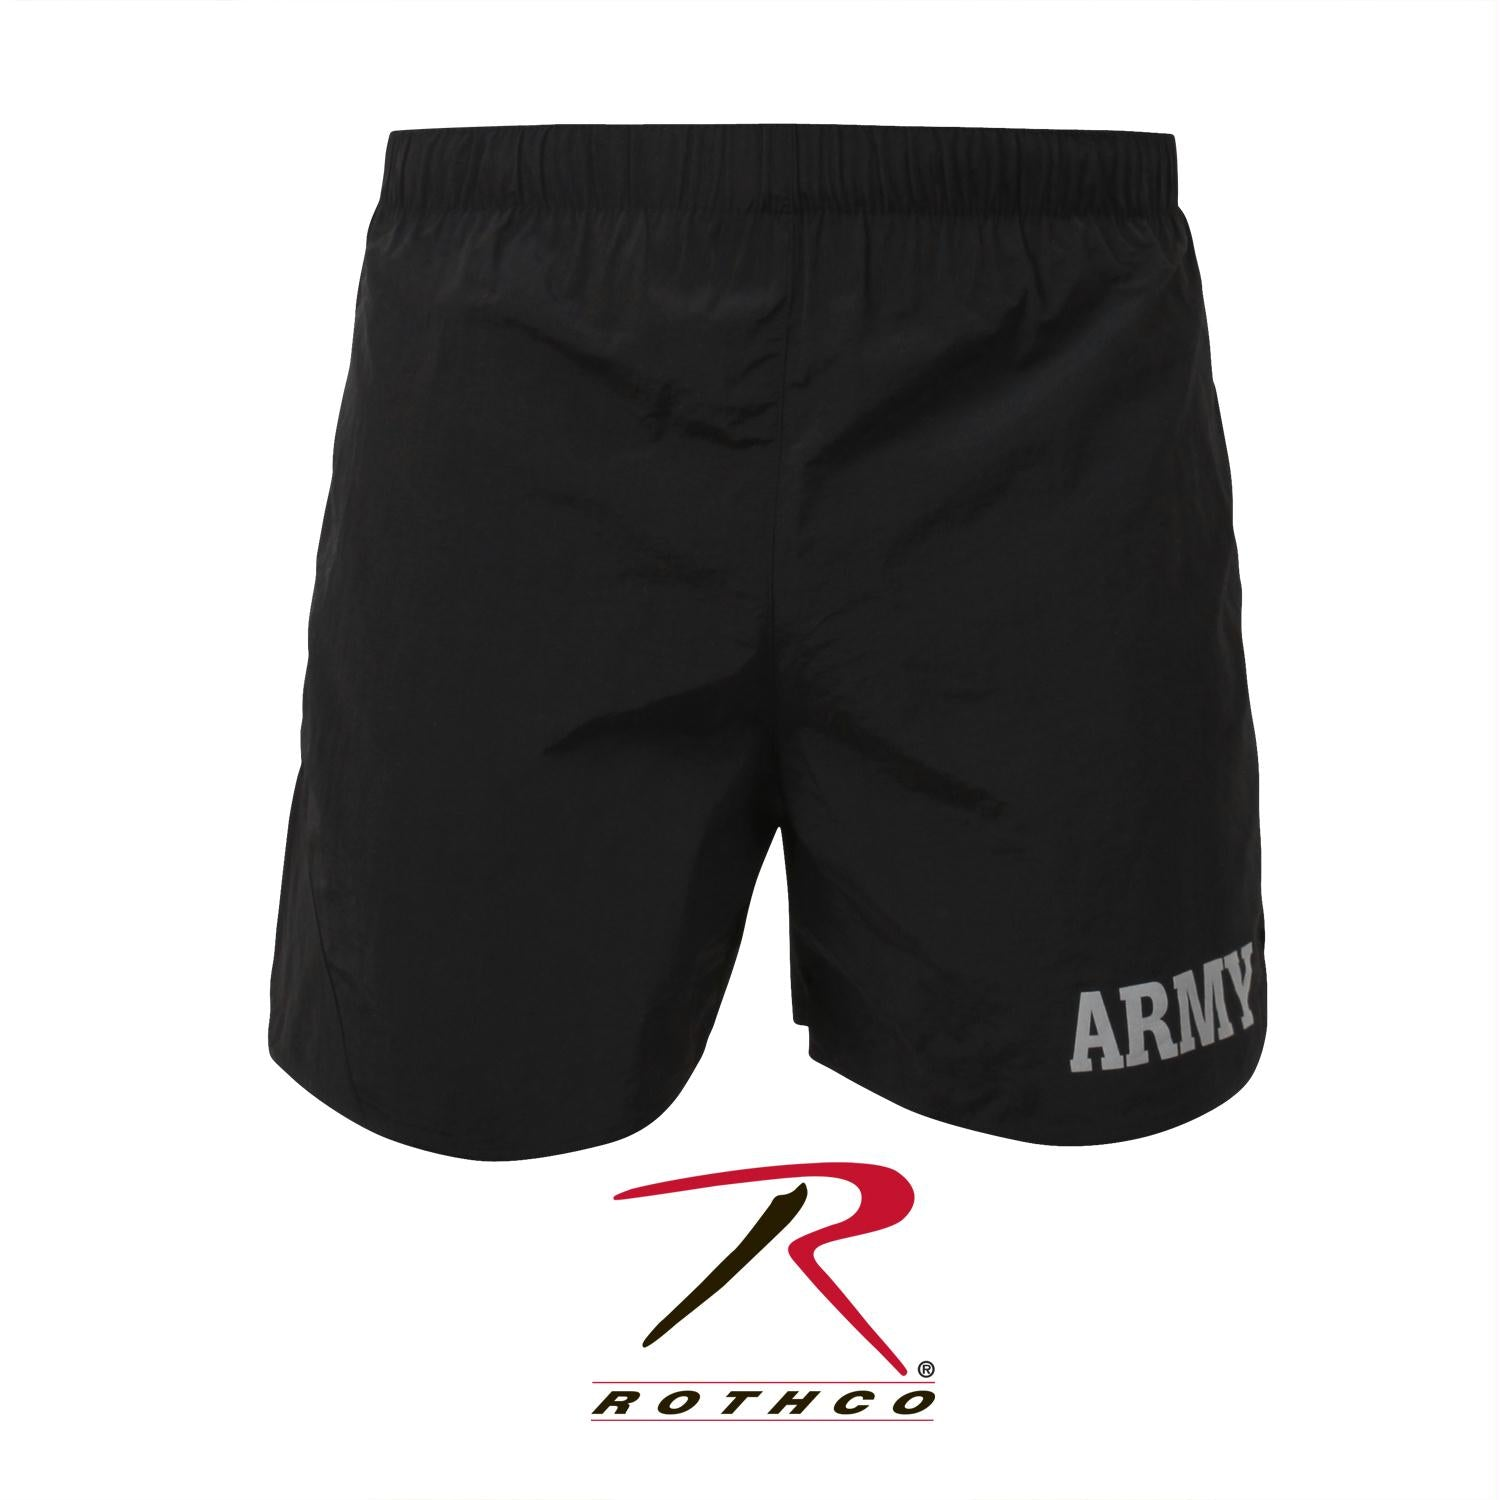 Rothco Physical Training  Shorts - Army / 3XL